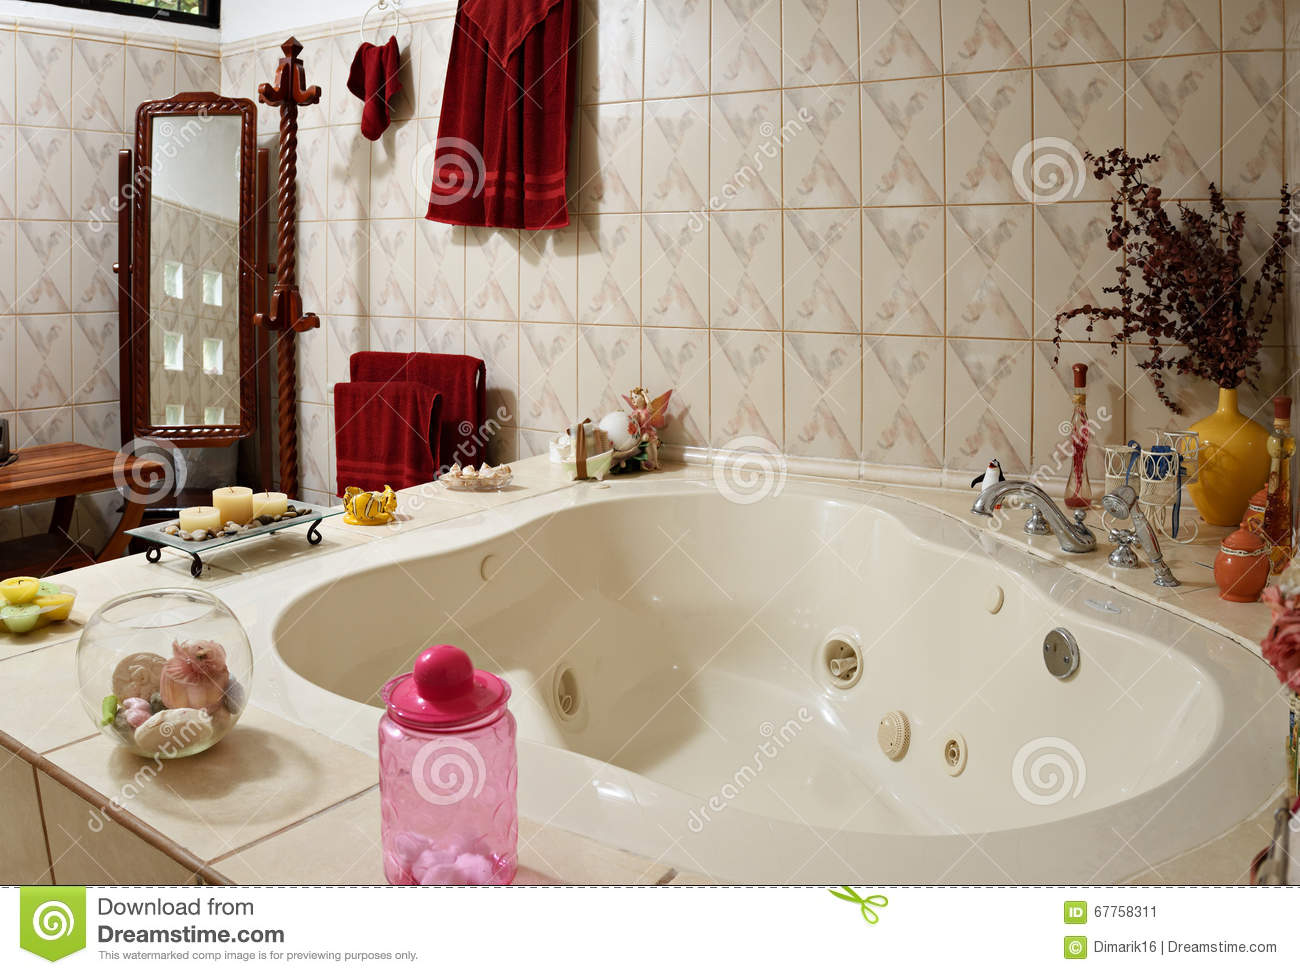 Home jacuzzi bath stock image. Image of whirlpool, bath - 67758311